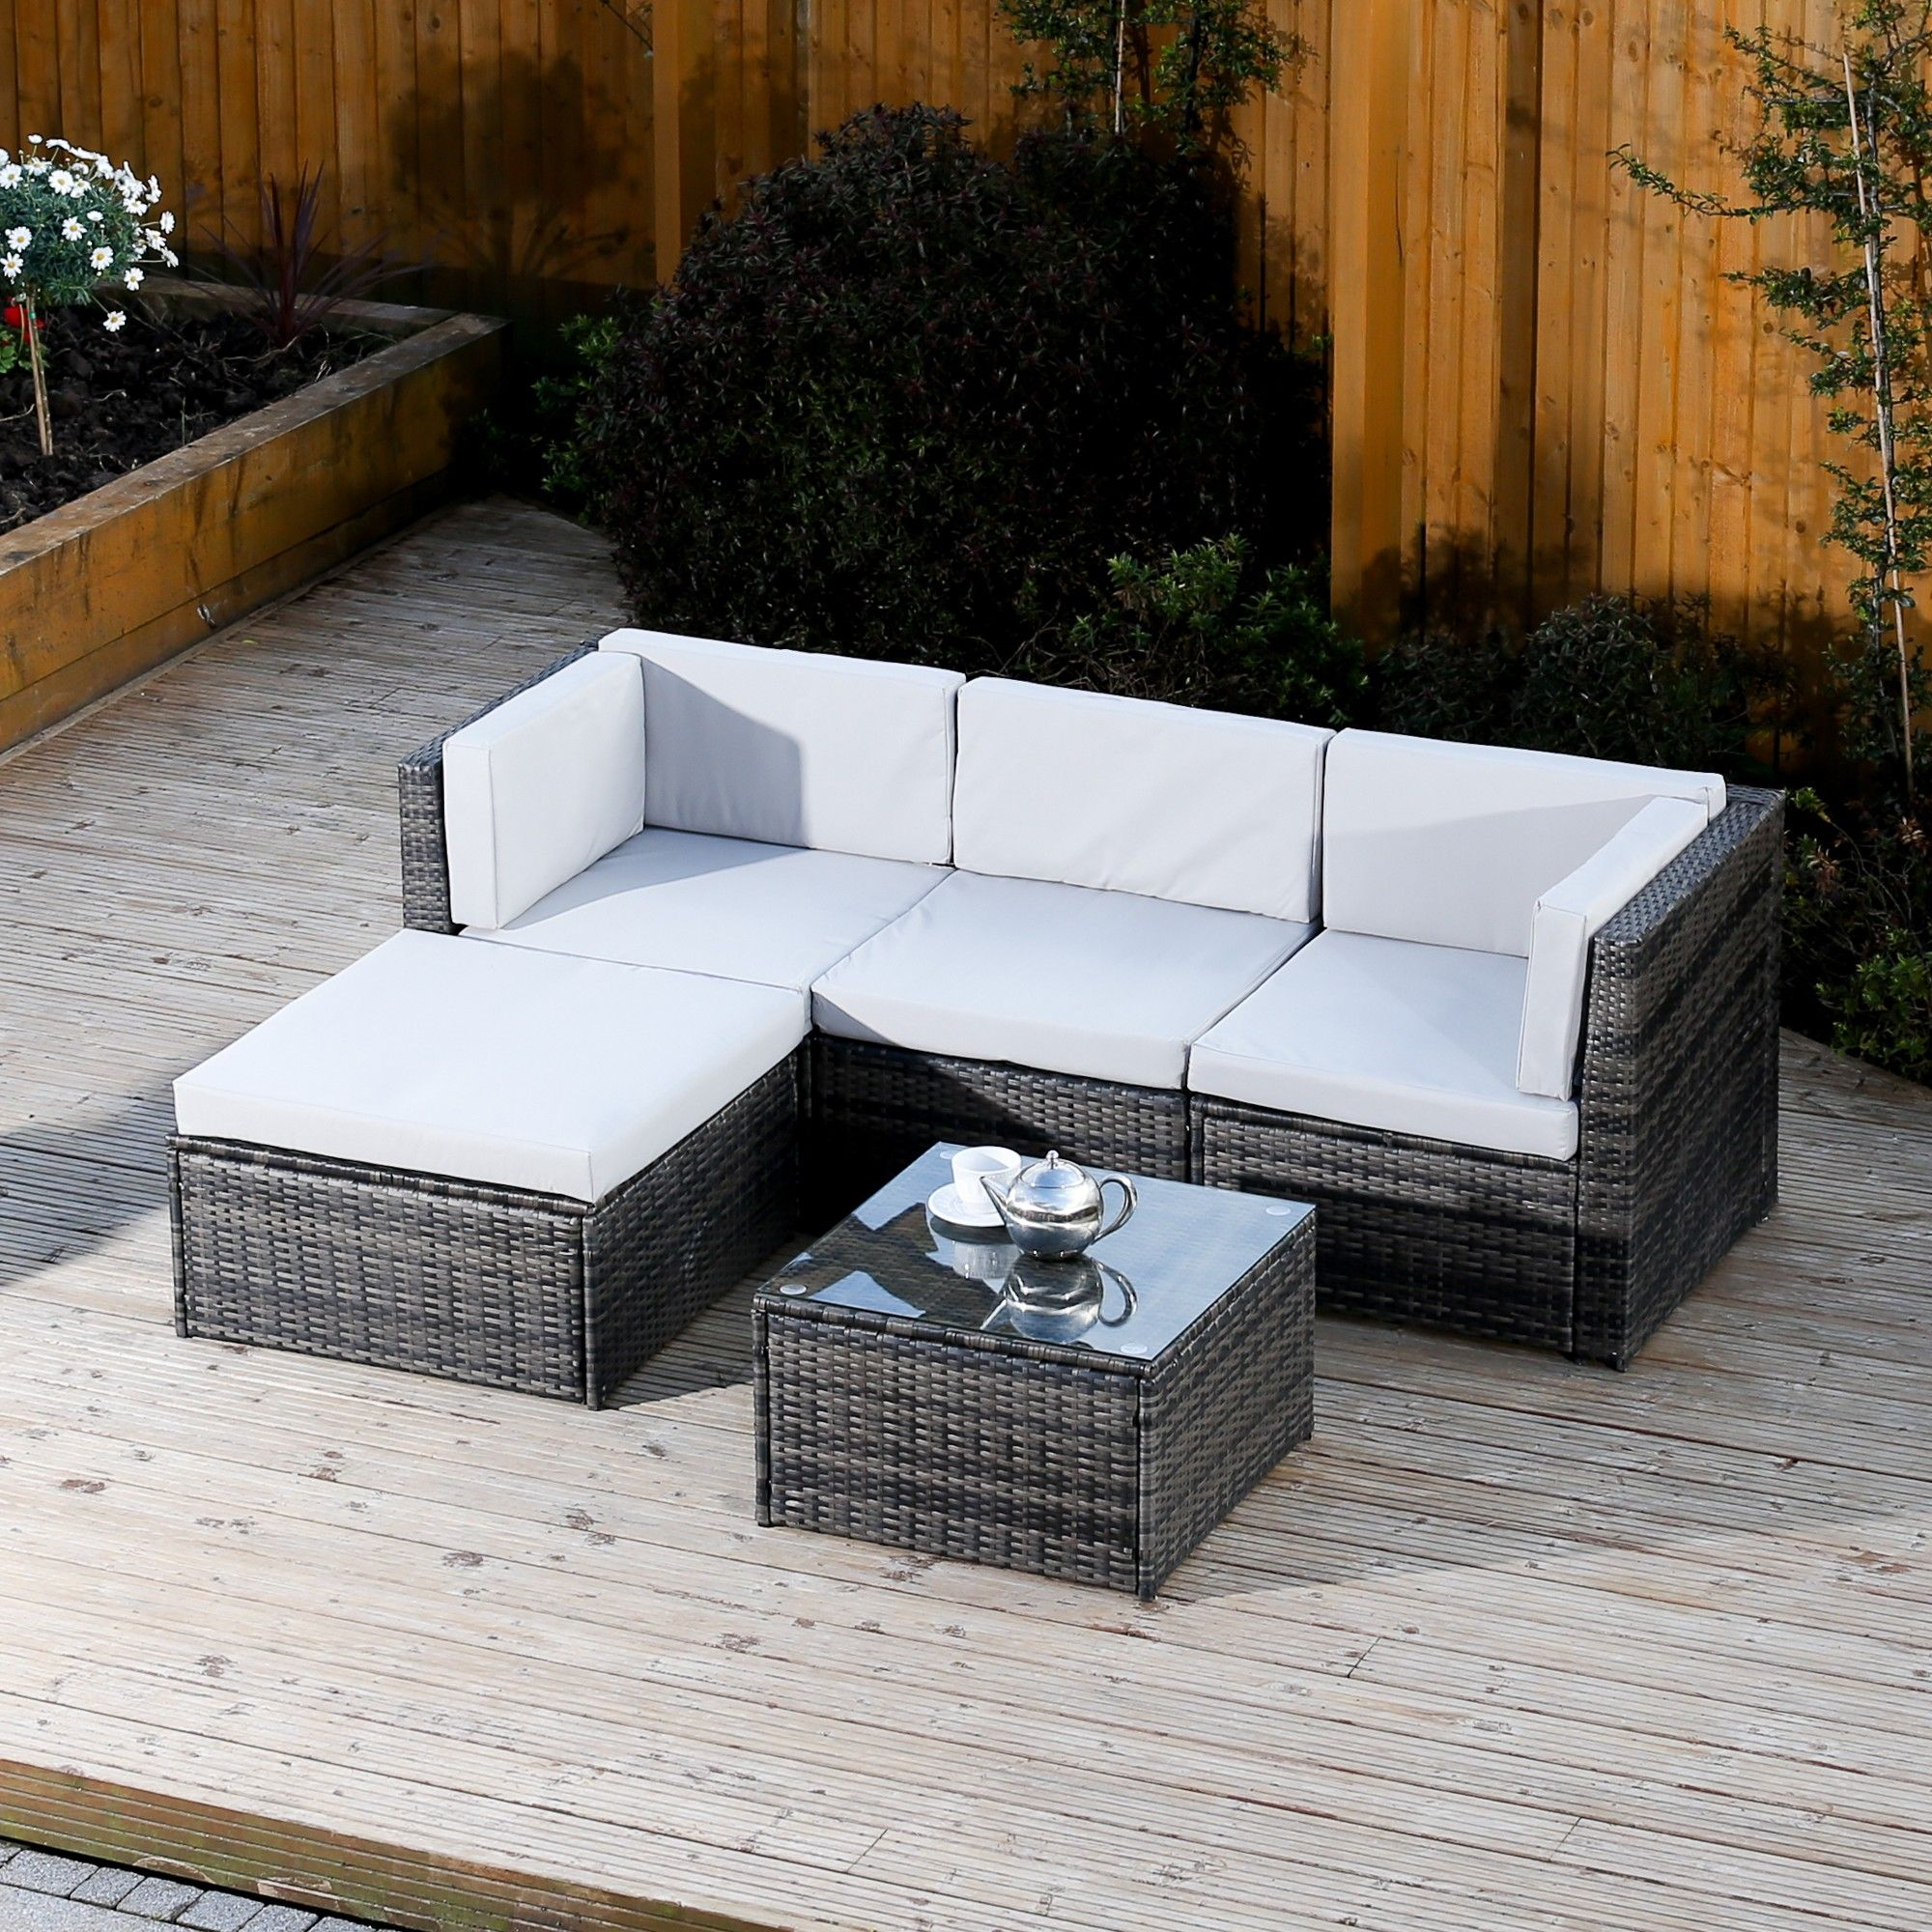 5 Piece Faro Modular Rattan Corner Sofa Set In Dark Mixed Grey With Light Cushio Rattan Effect Garden Furniture Grey Rattan Garden Furniture Rattan Corner Sofa